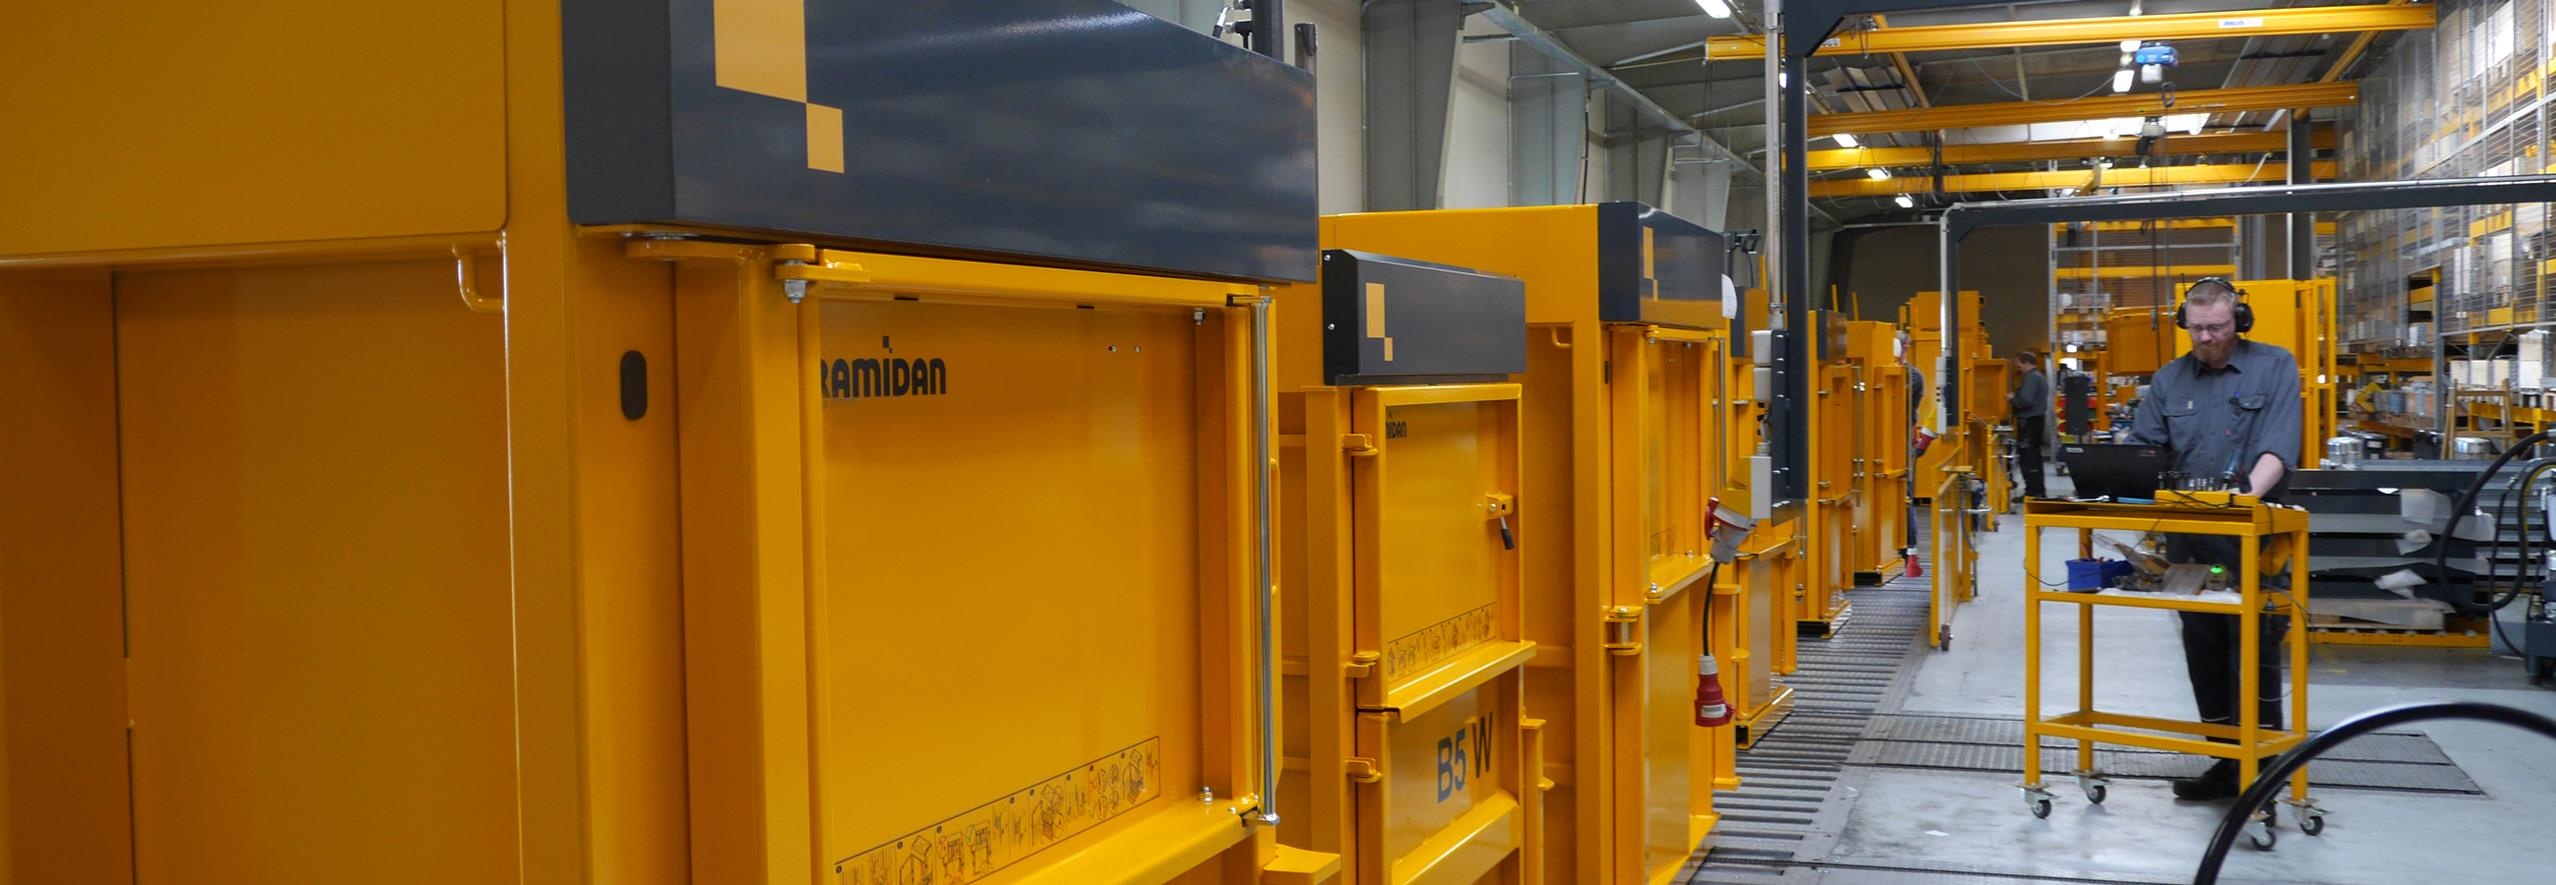 Production line filled with yellow balers and man with earmuffs